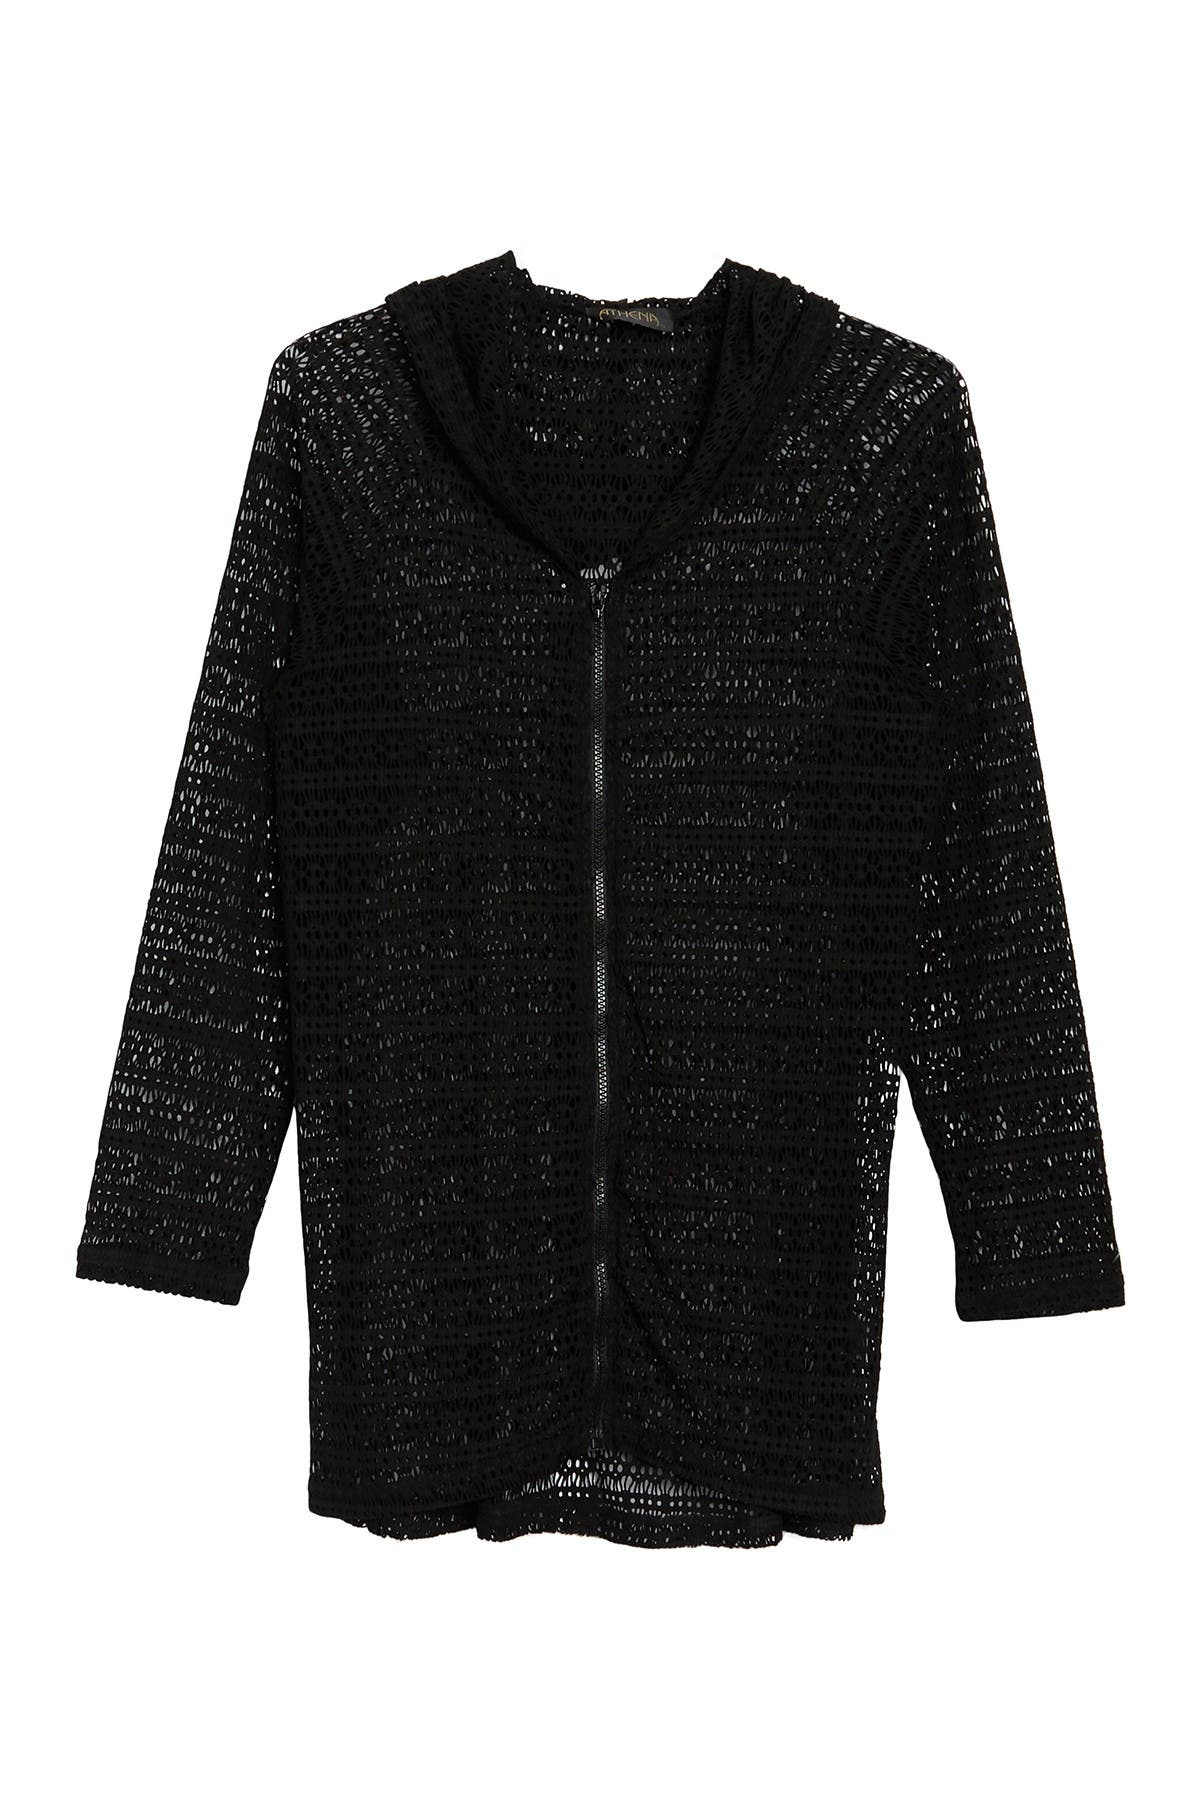 Image of Athena Crochet Knit Cover-Up Hoodie